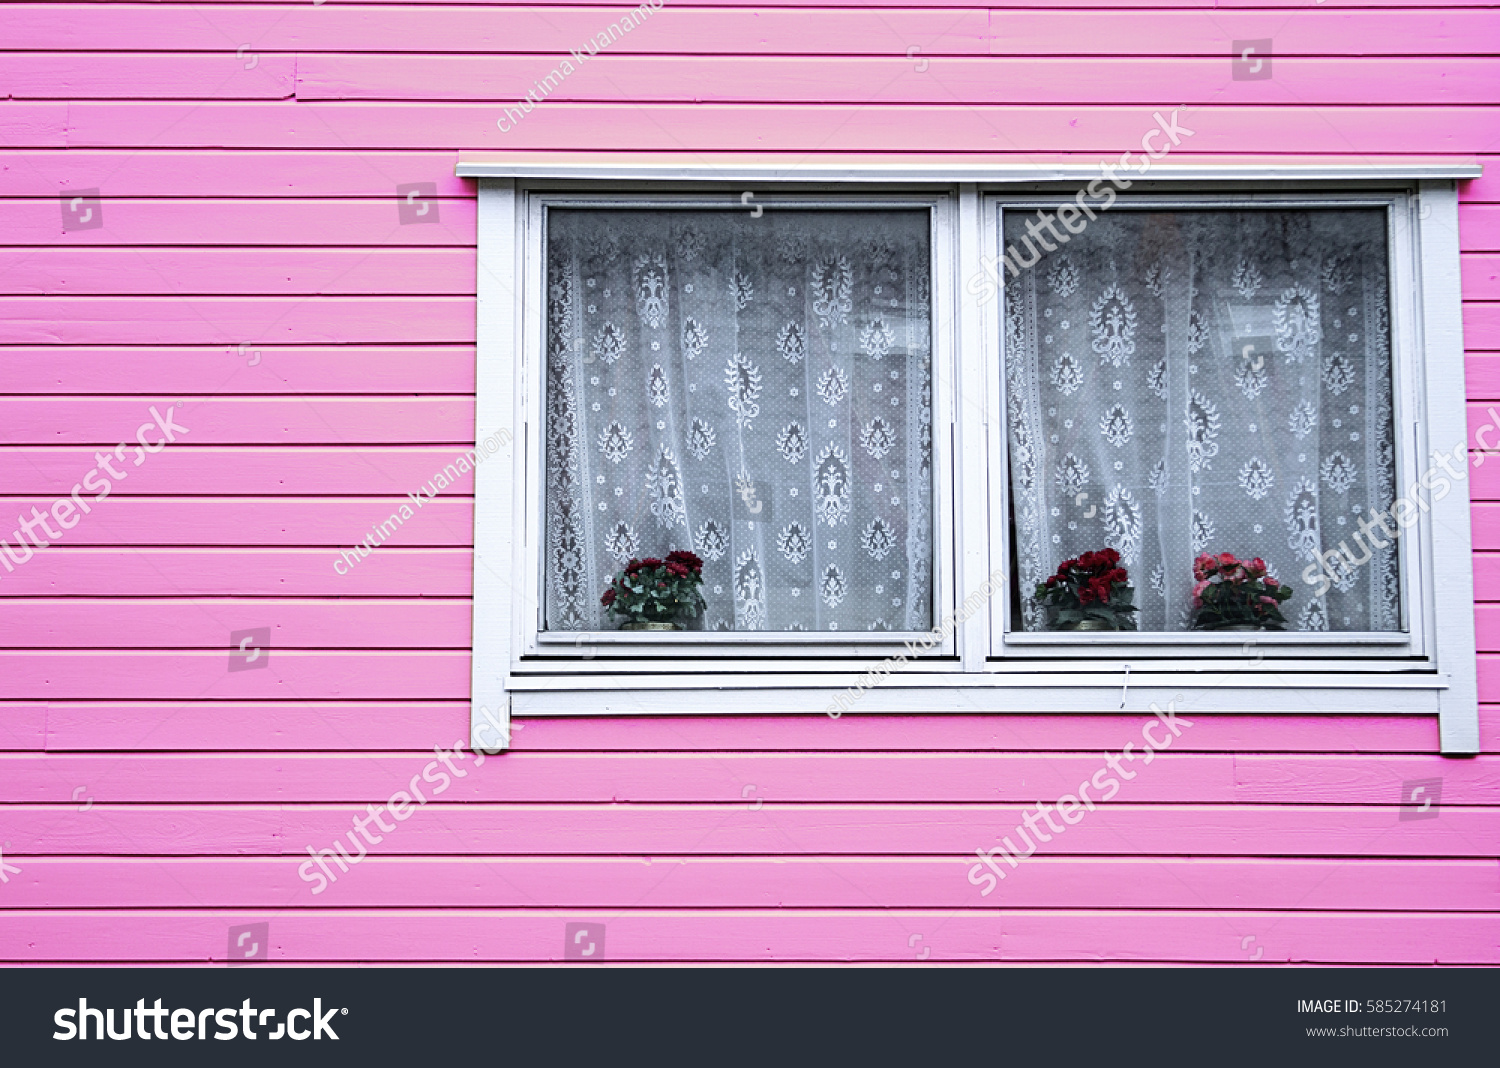 House Wood Architecture Vase Roses Pink Stock Photo (Edit Now ...